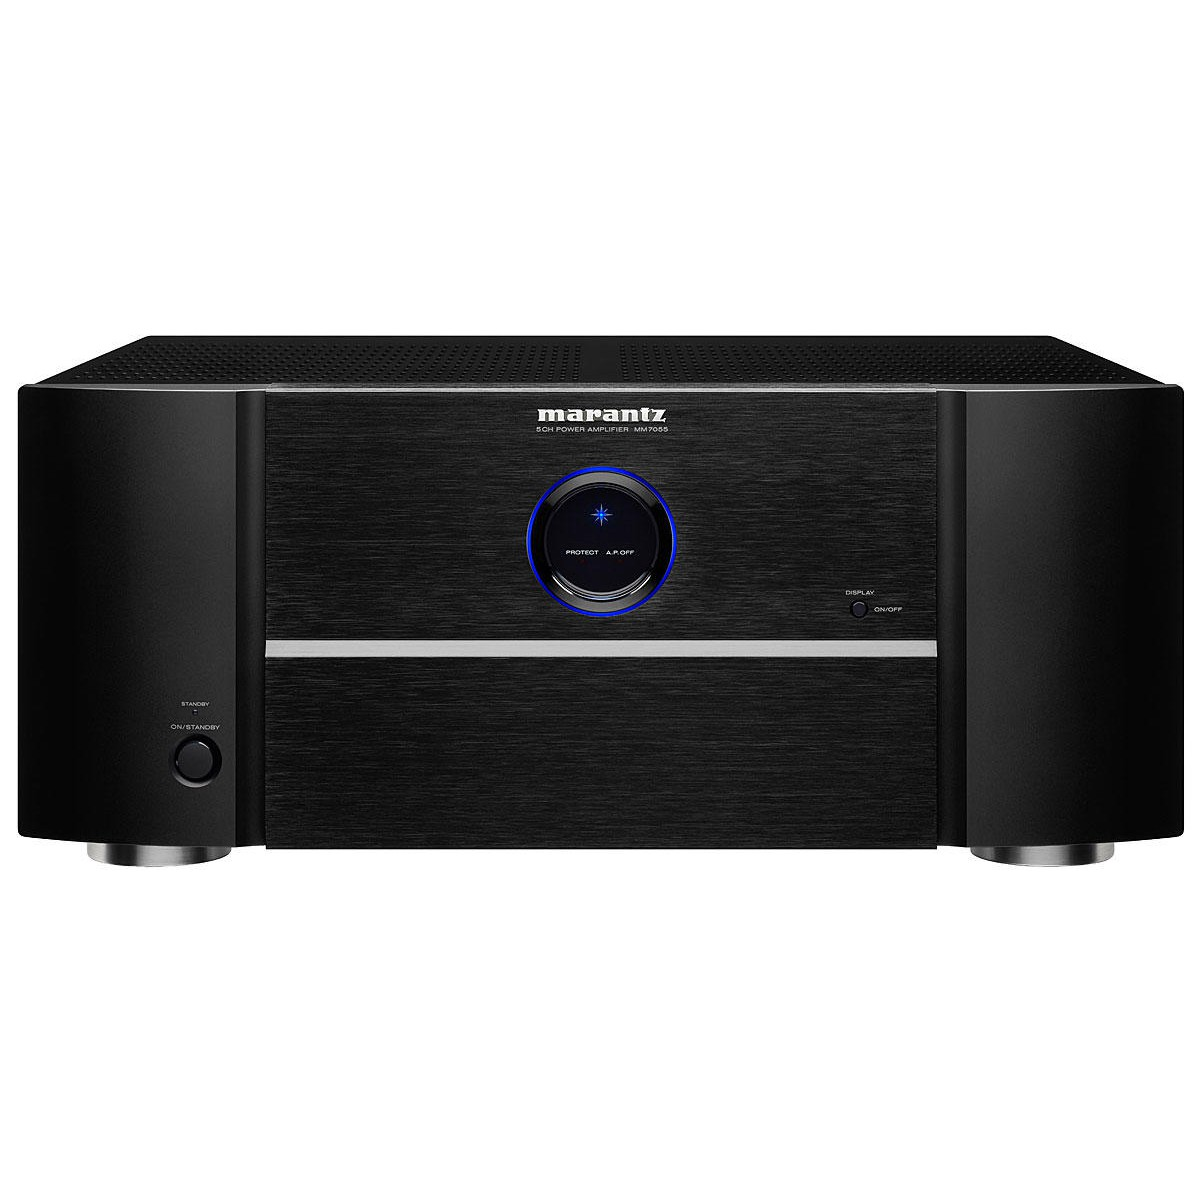 AV Power Amplifier MM7055 BLACK